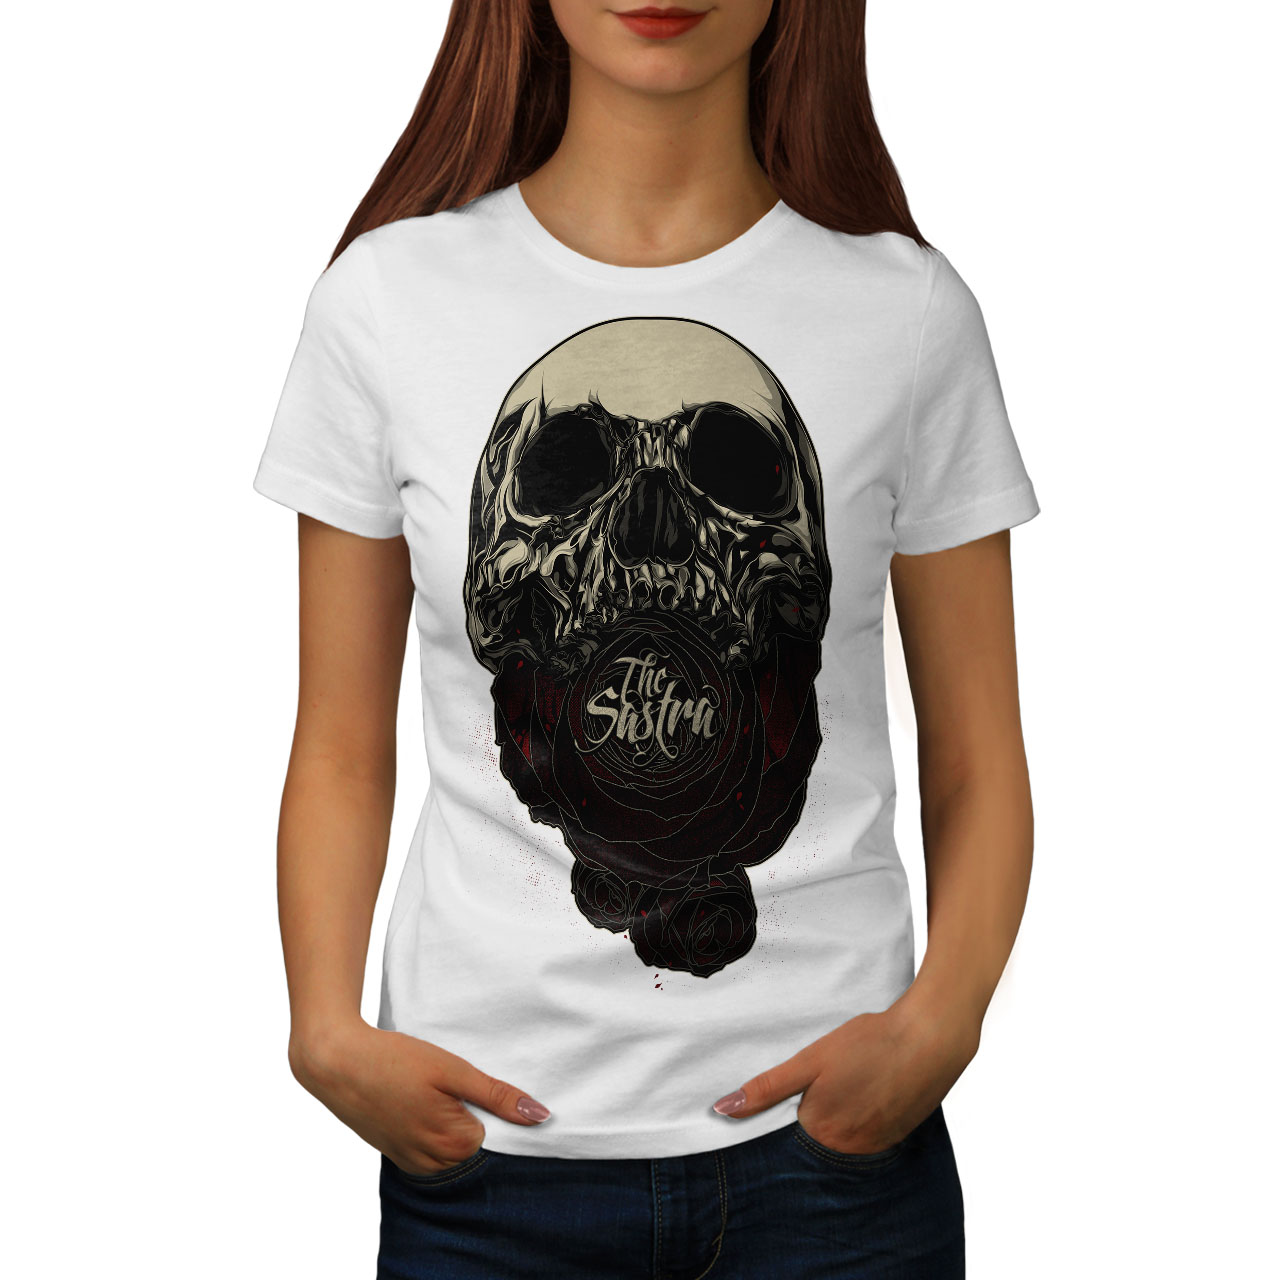 9f58981301 Image is loading The-Sastra-Rose-Skull-Women-T-shirt-NEW-